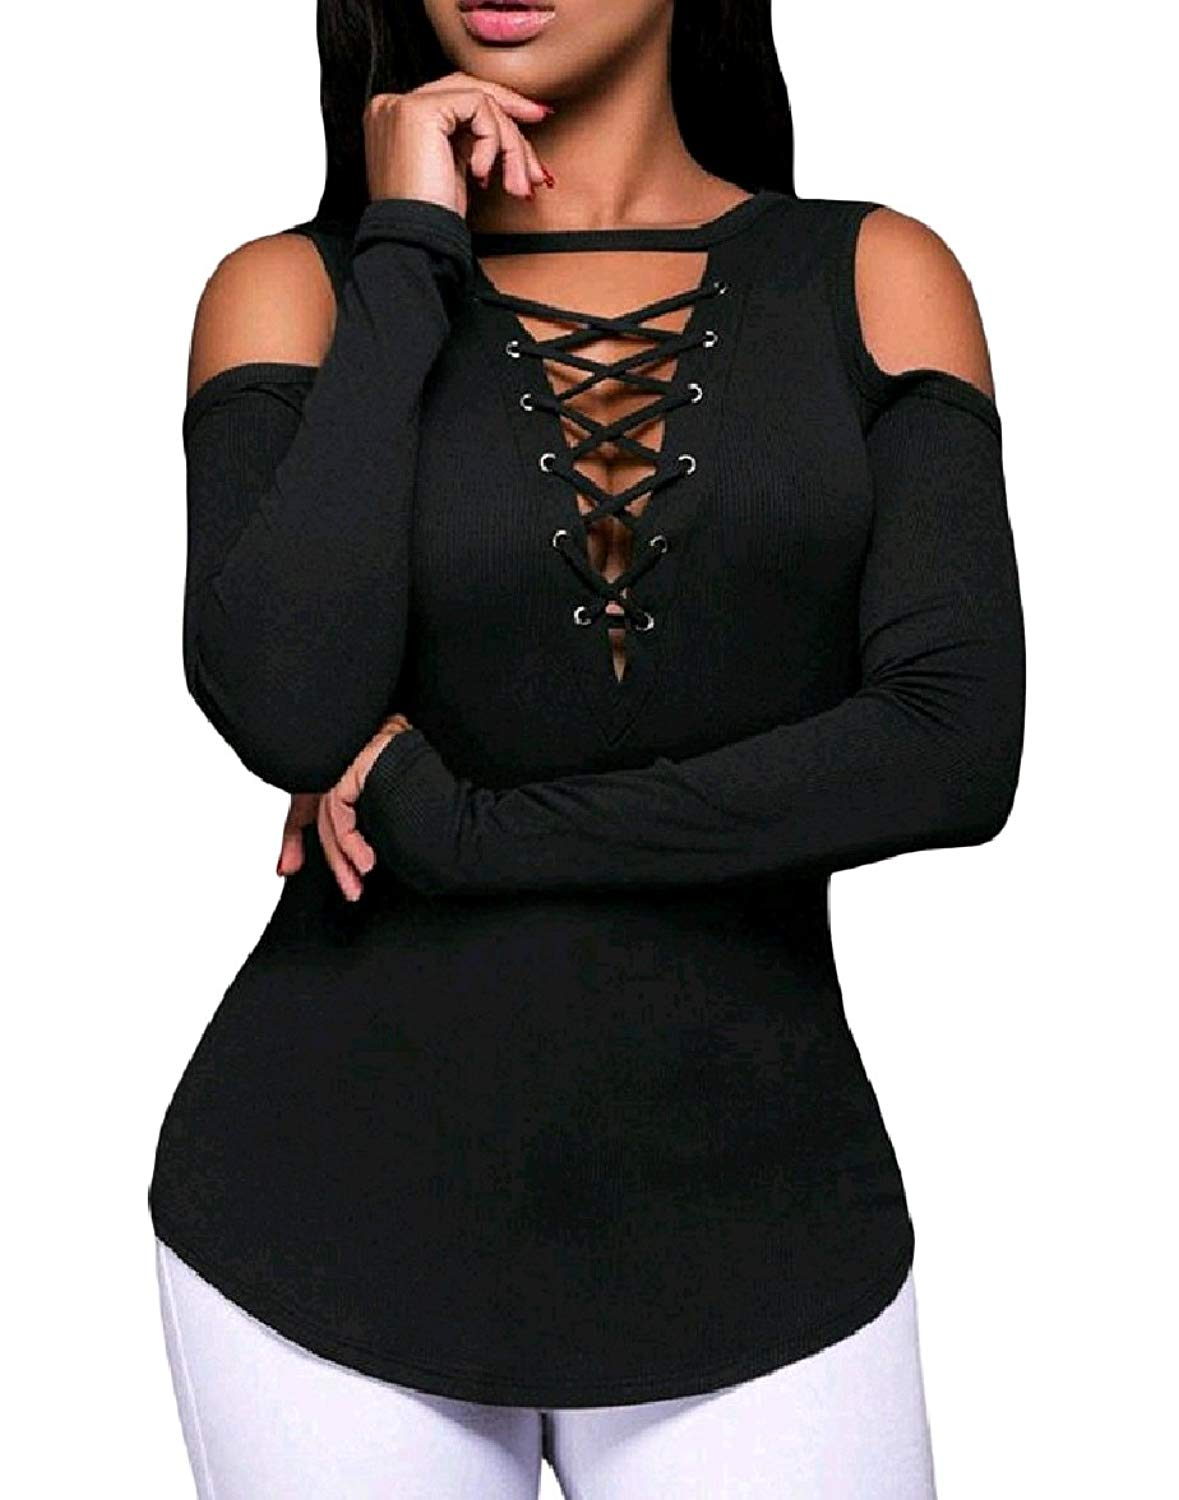 Zimaes-Women Hollow Out Cold Shoulder W Casual Slim Fitting Long-Sleeve T-Shirt Top Pullover